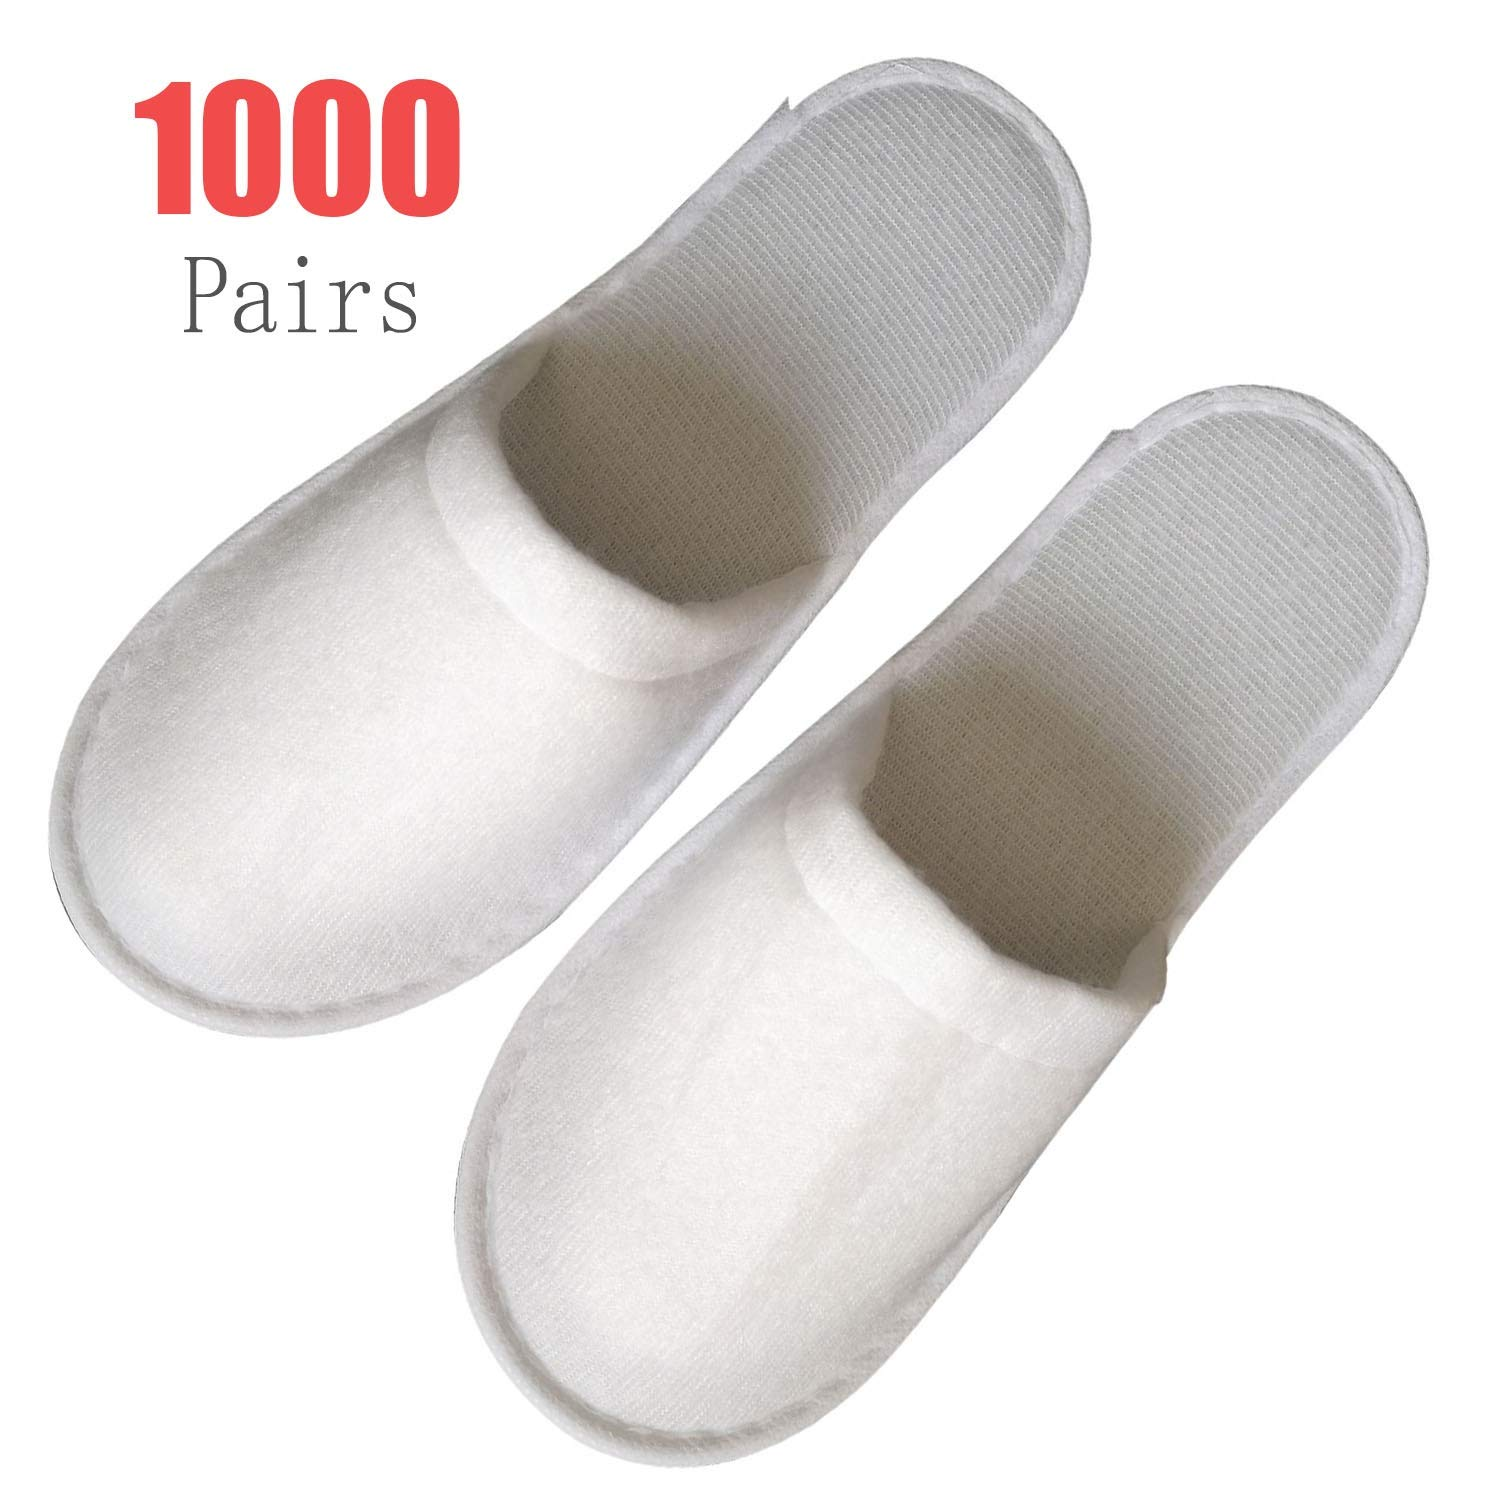 1000 Pairs Slippers Women and Men Disposable Portable 1000 Pair Hotel Disposable Slippers Puller Plush Closed Toe Spa Slippers for Men, Women Non-Slip Slippers for Hotel Home White Spa-